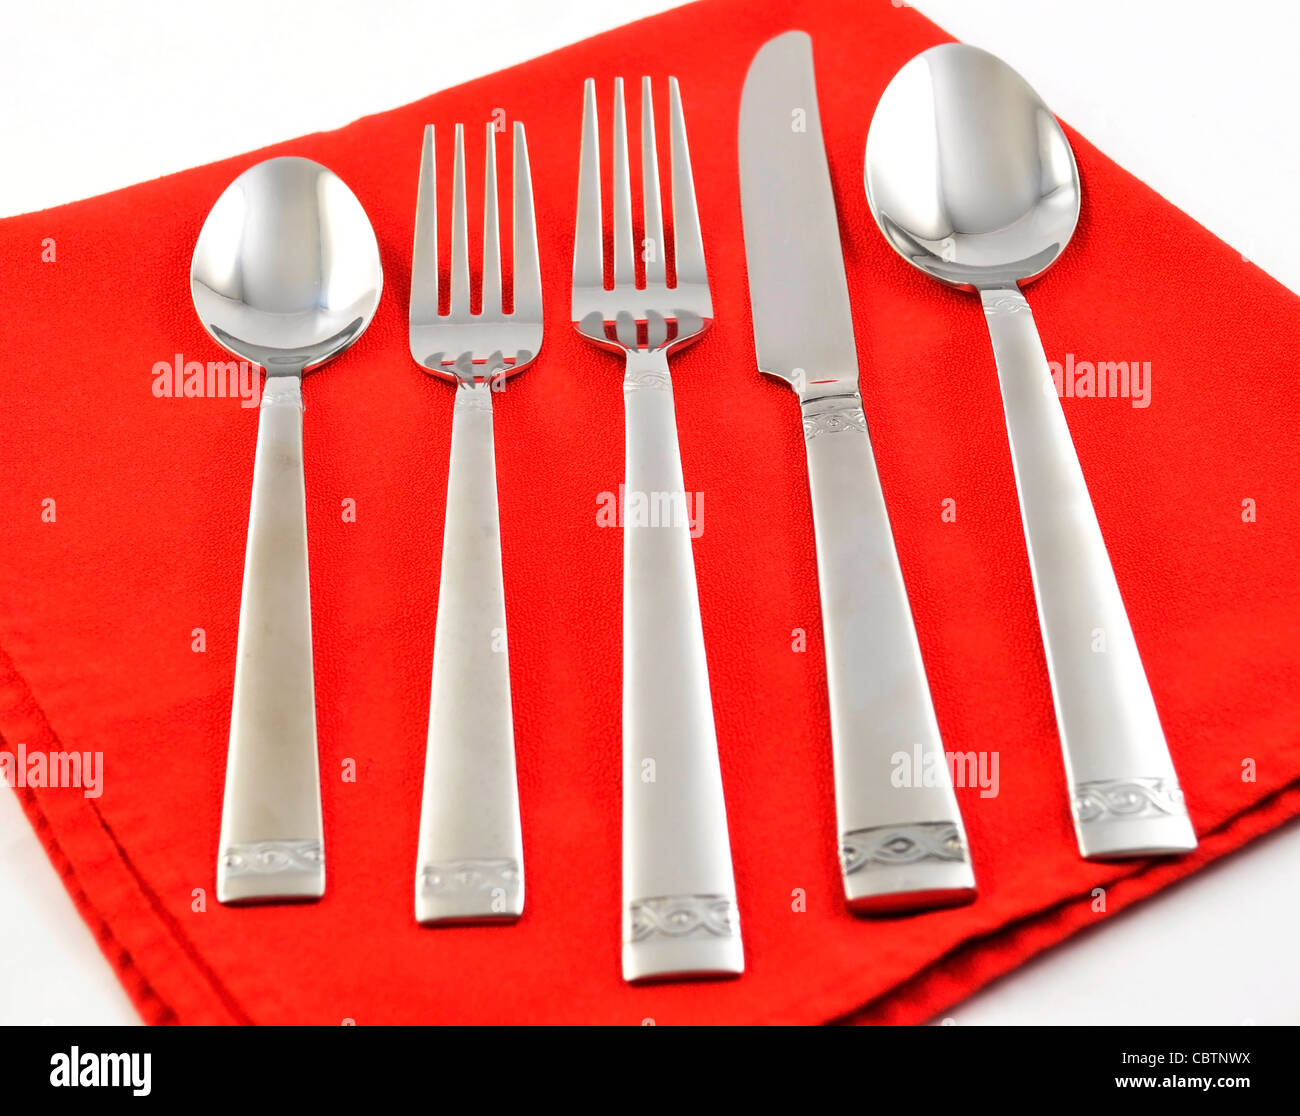 silverware set on a red napkin - Stock Image